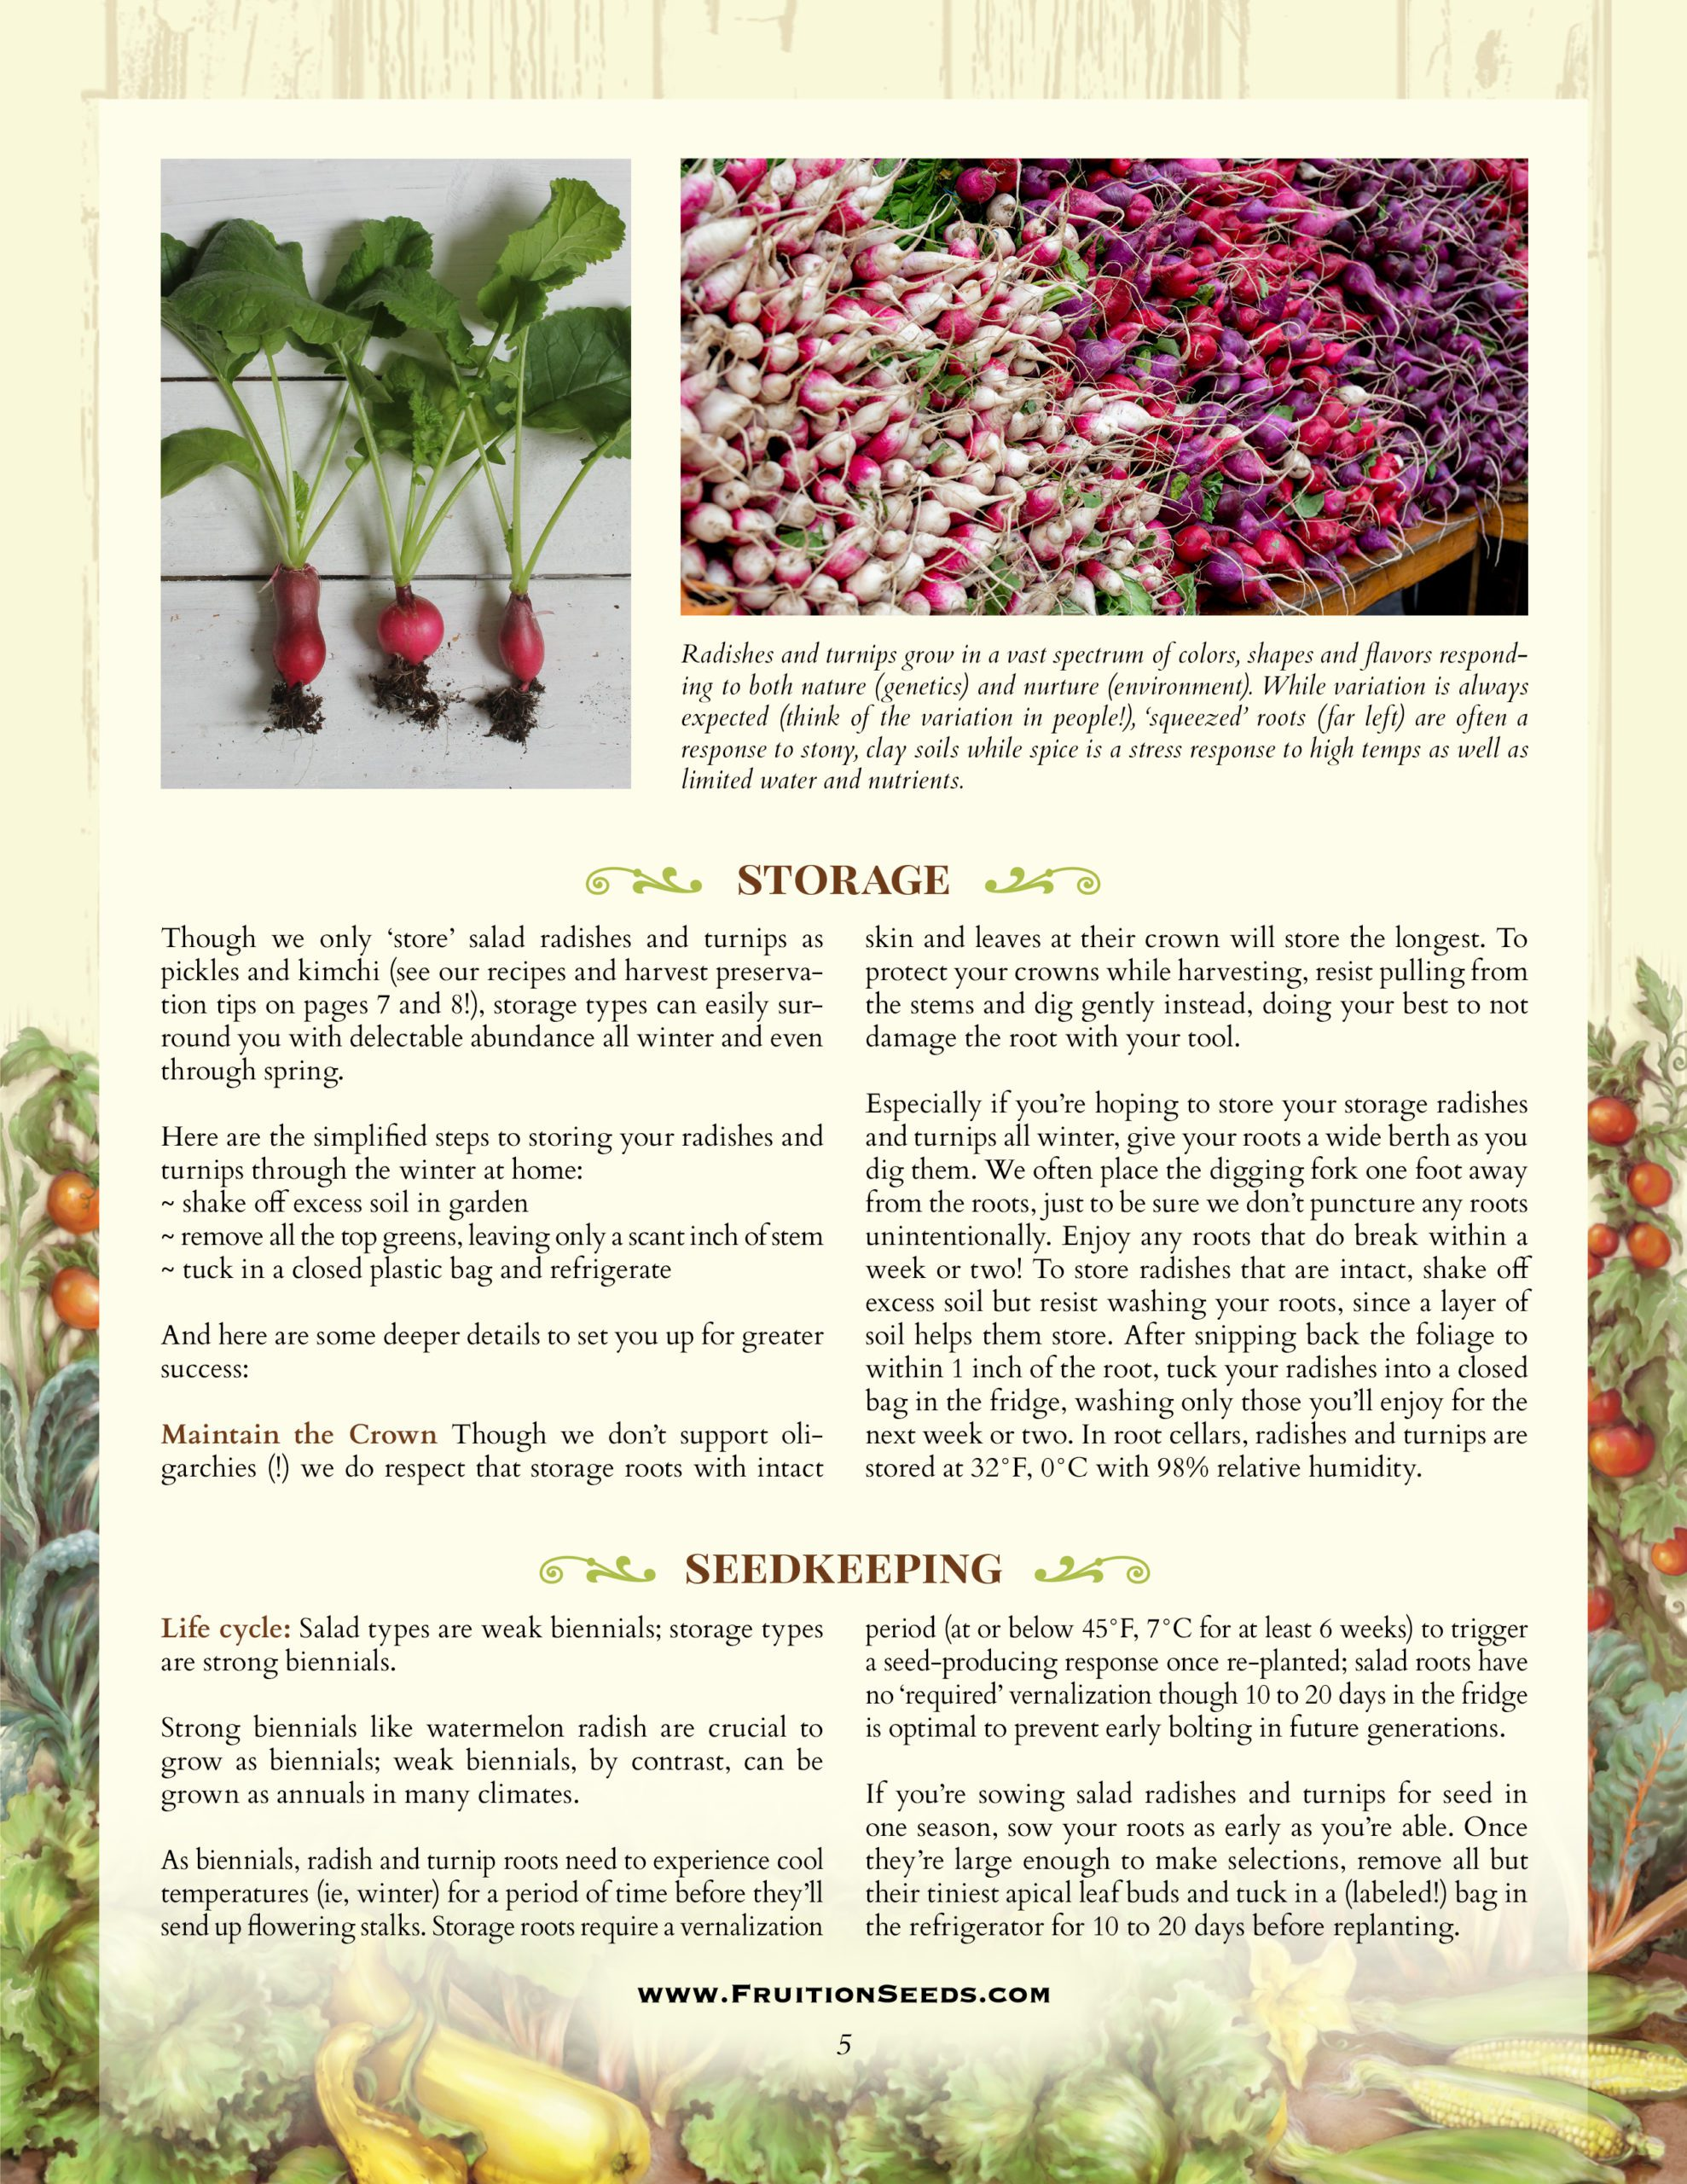 Growing Guide for Radish + Turnip Seedkeeping Guide